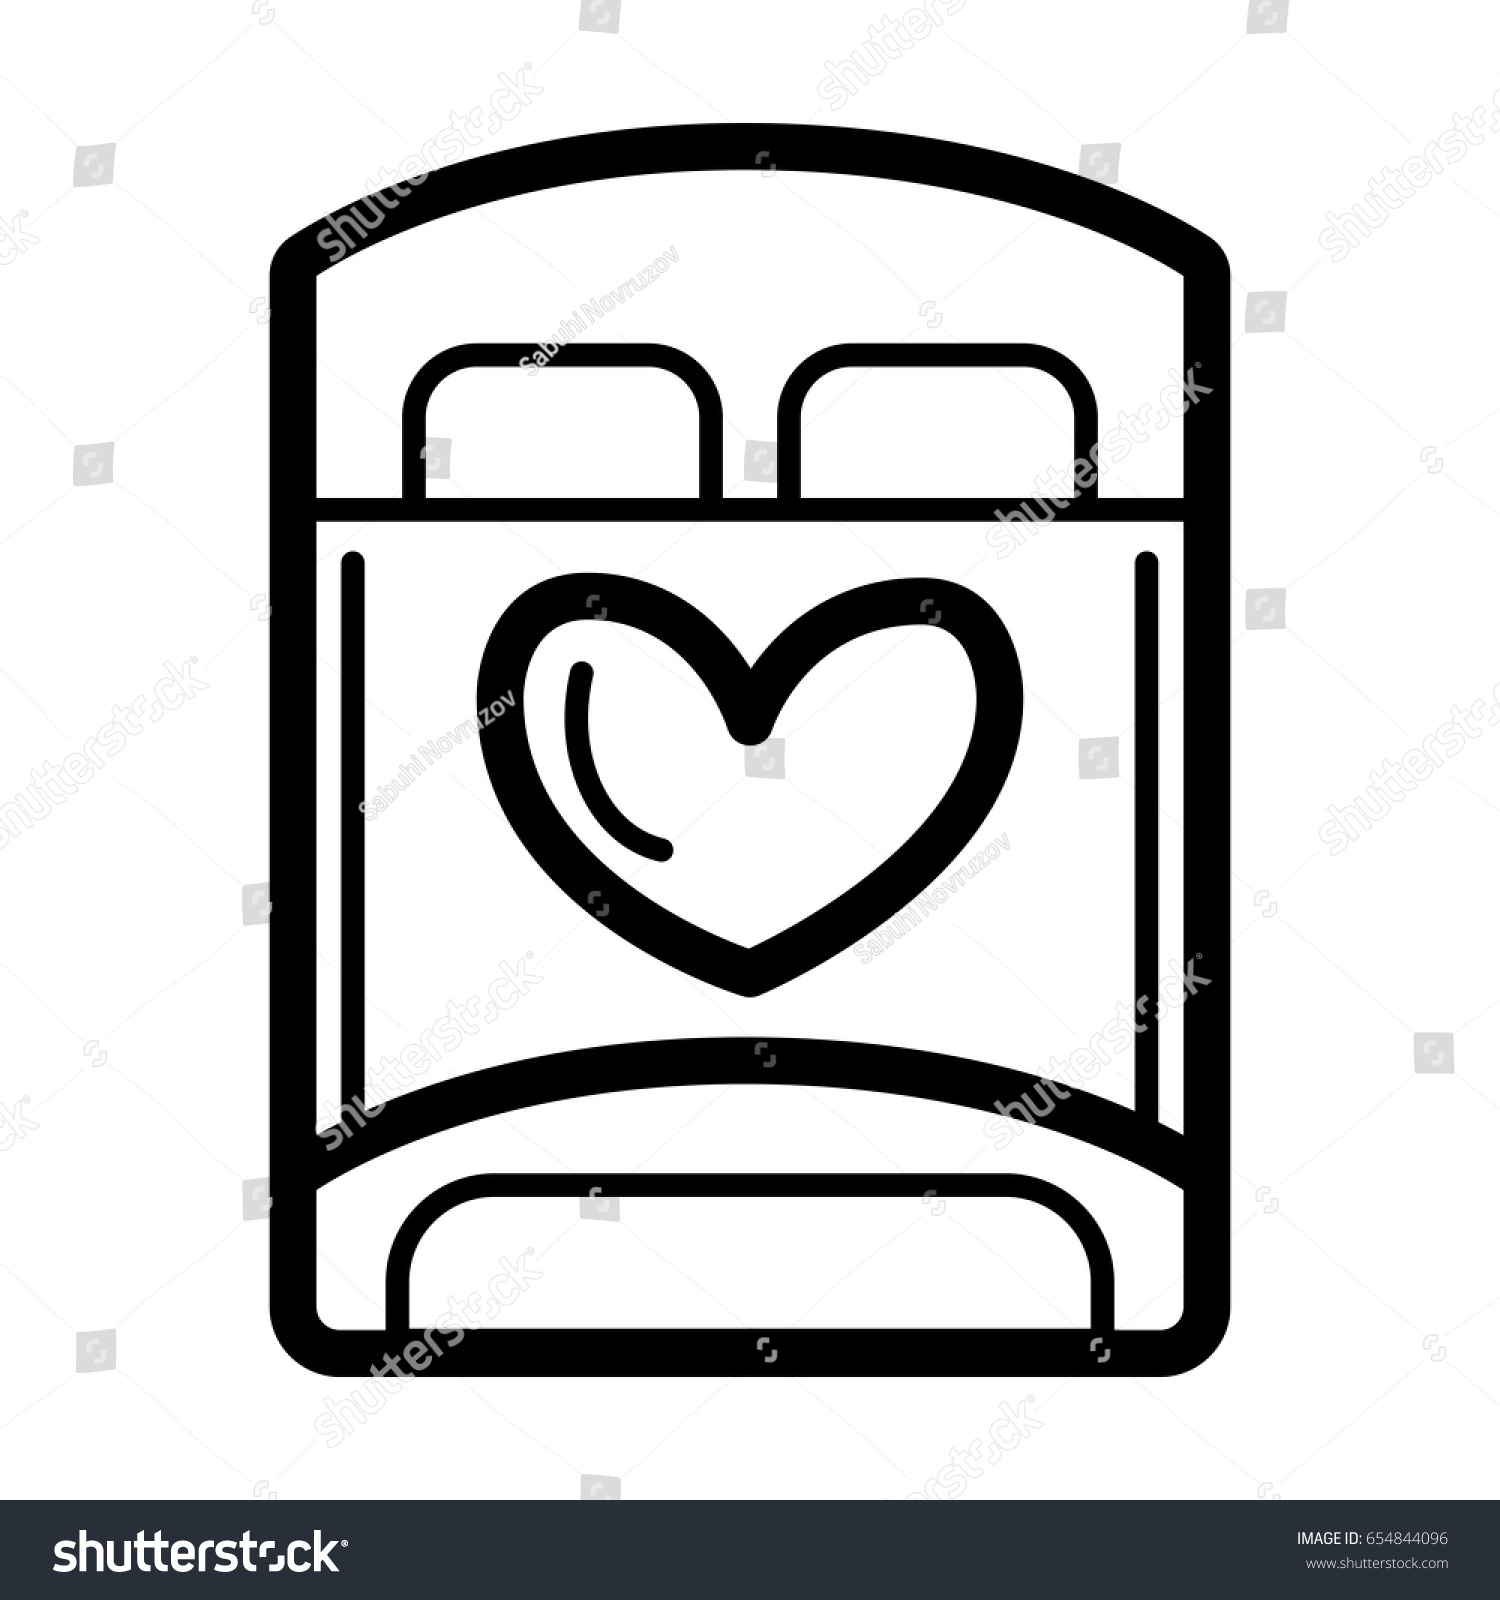 Bed lovers simple vector icon black stock vector 654844096 bed for lovers simple vector icon black and white illustration of bed for sex biocorpaavc